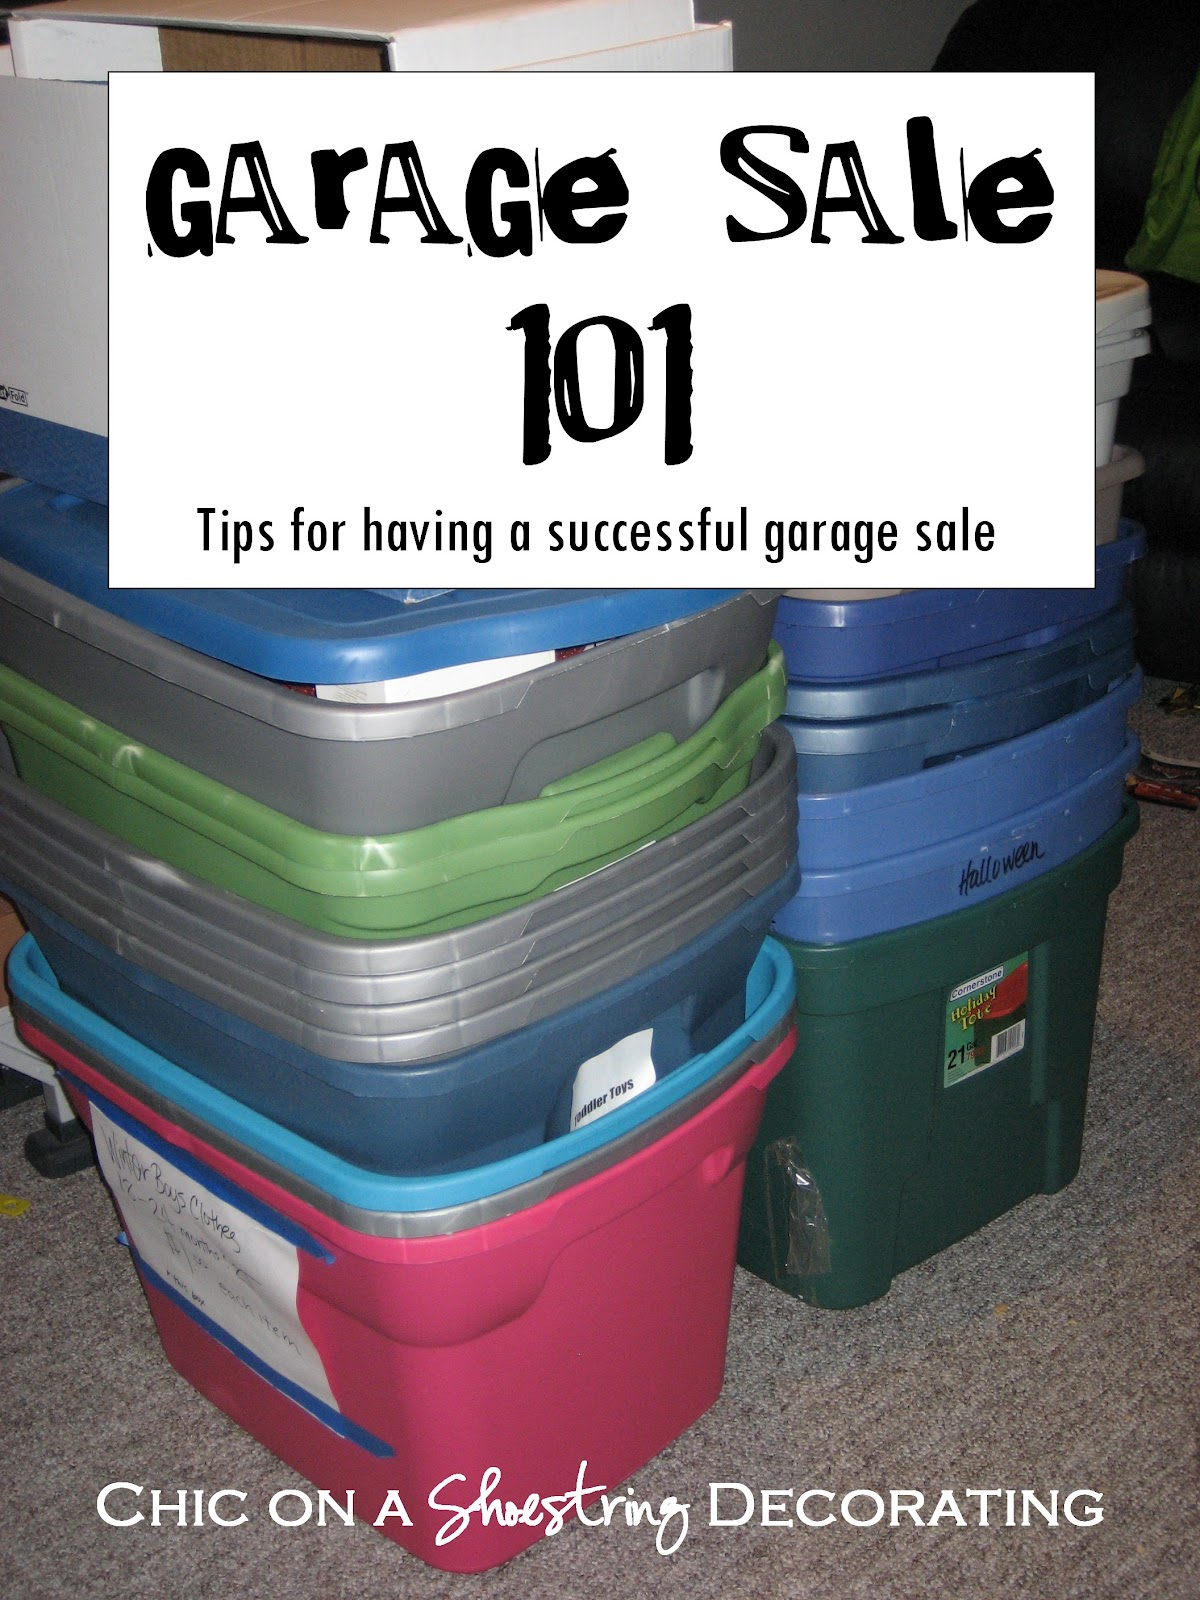 garage sale setup ideas - Chic on a Shoestring Decorating How to Have a Successful